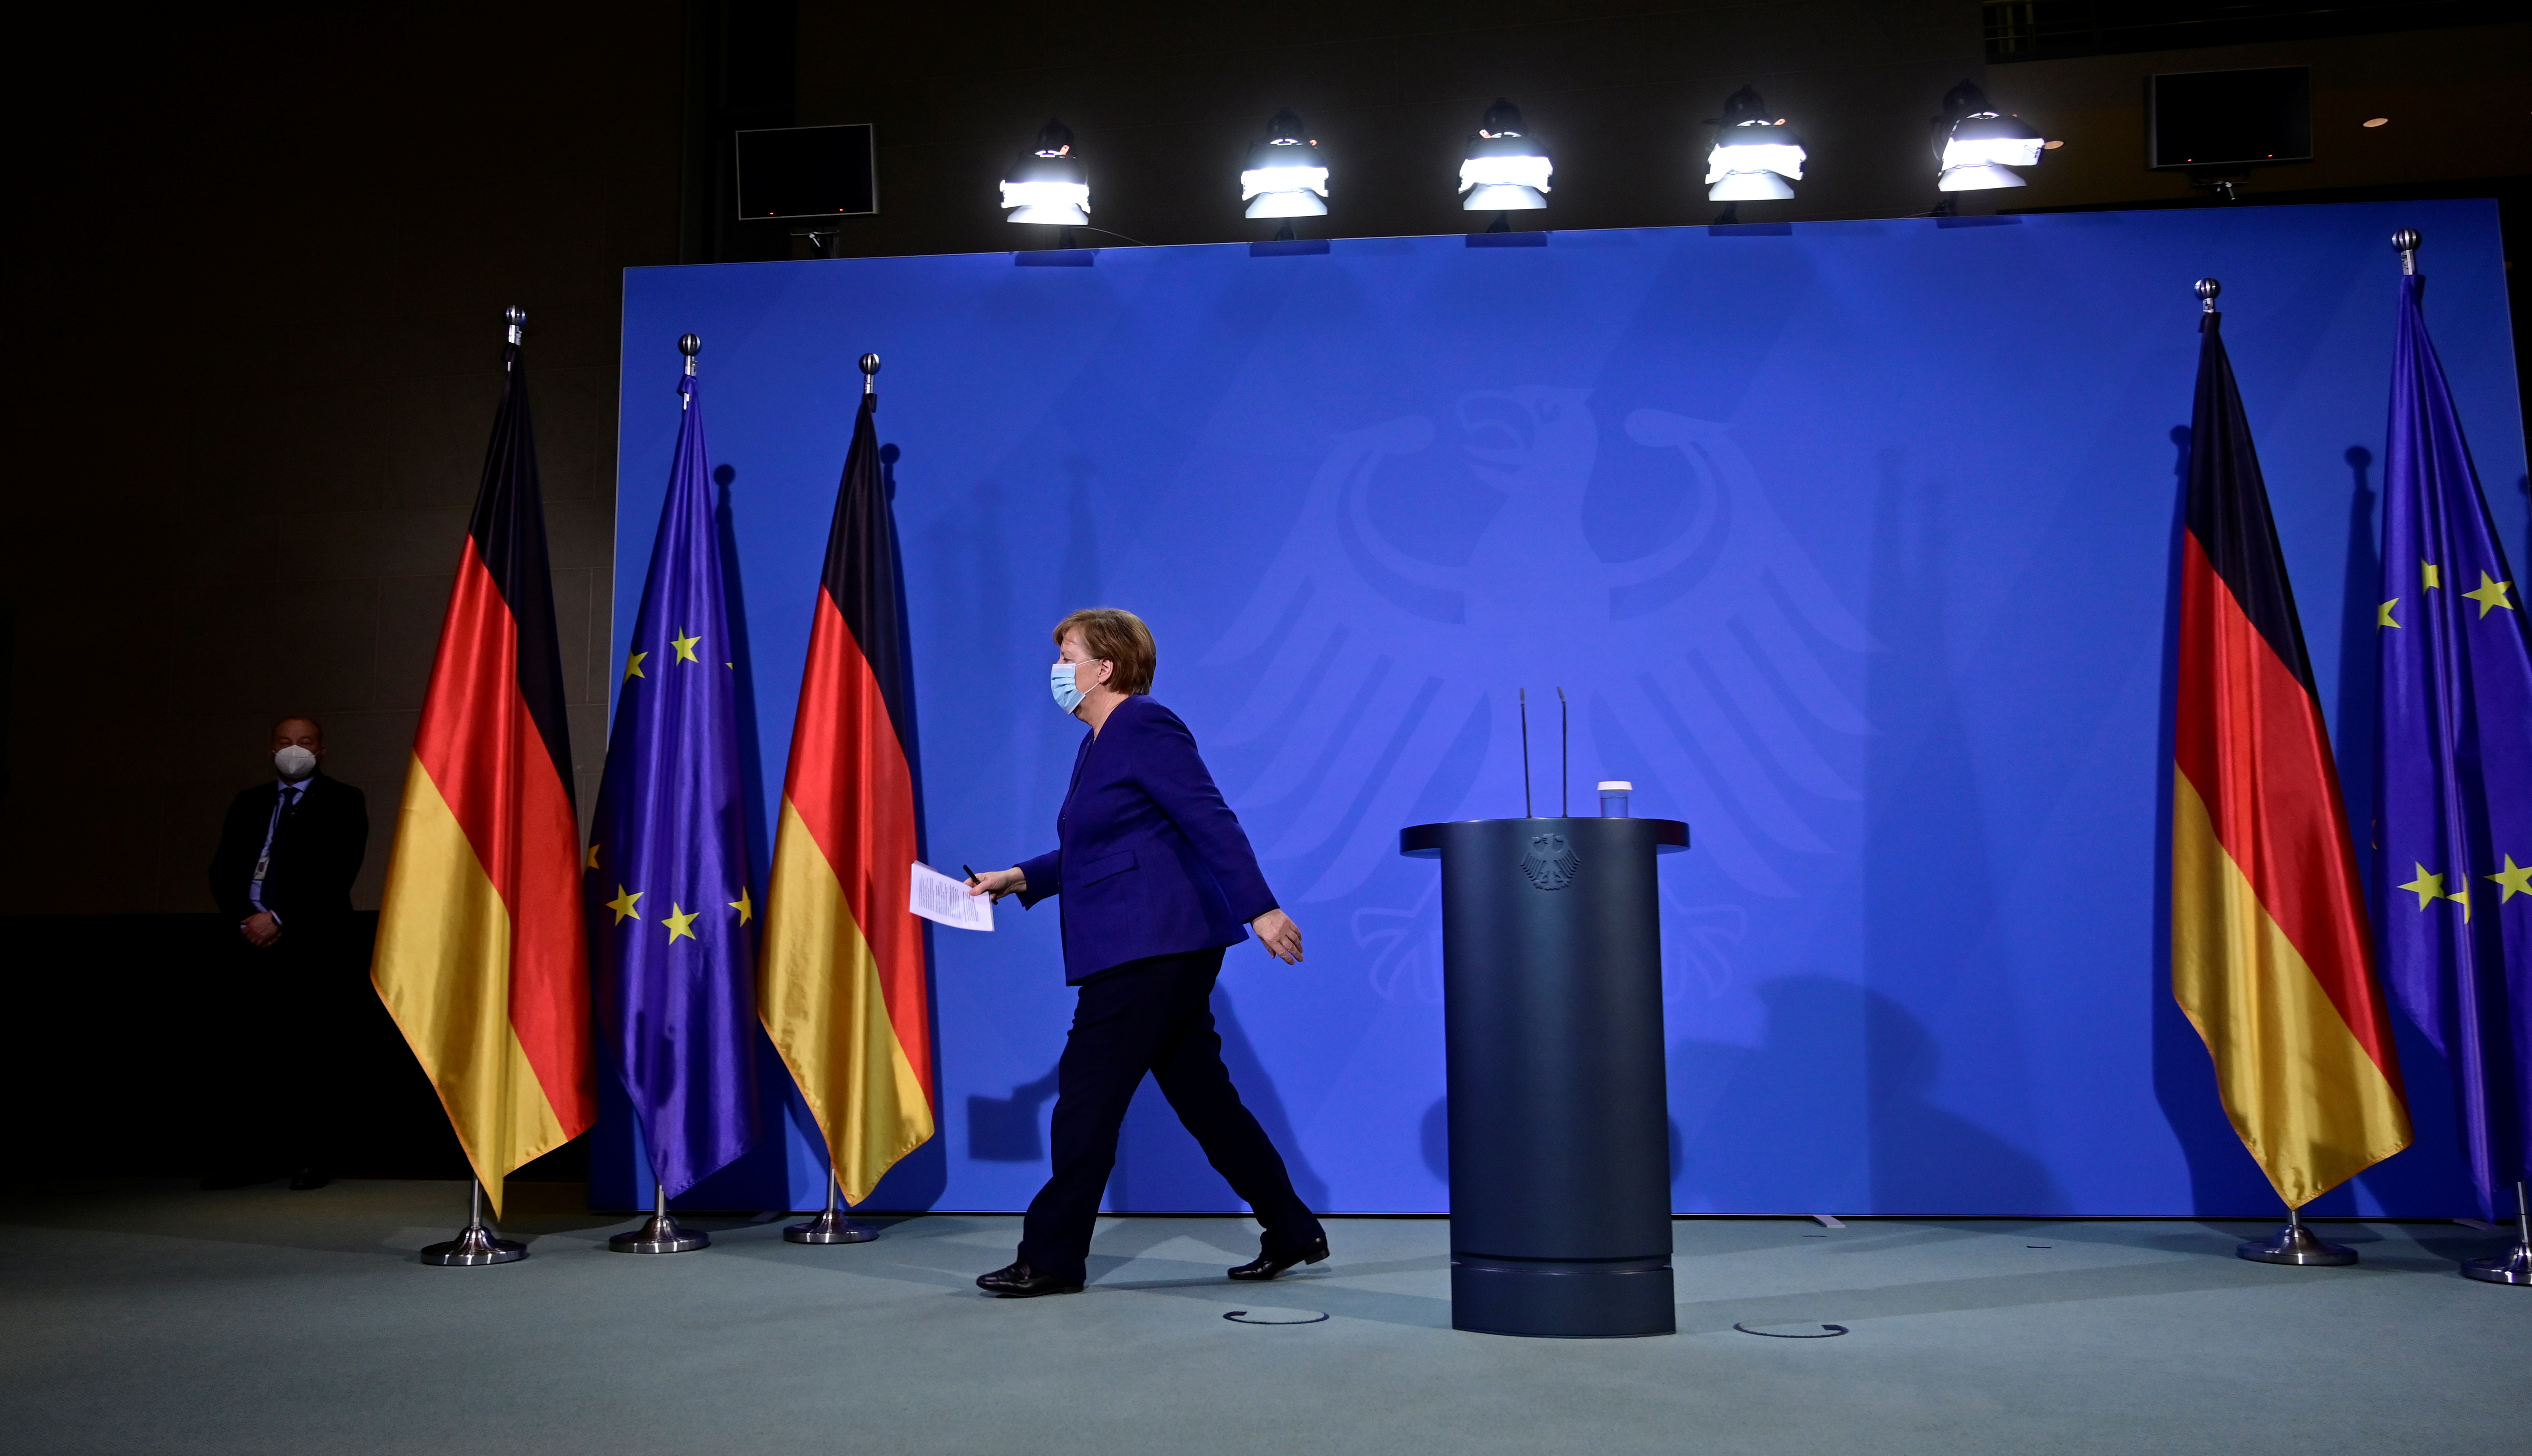 German Chancellor Angela Merkel leaves after addressing a press conference following the EU leaders' videoconference in Berlin, Germany February 25, 2021. John MacDougall/Pool via REUTERS